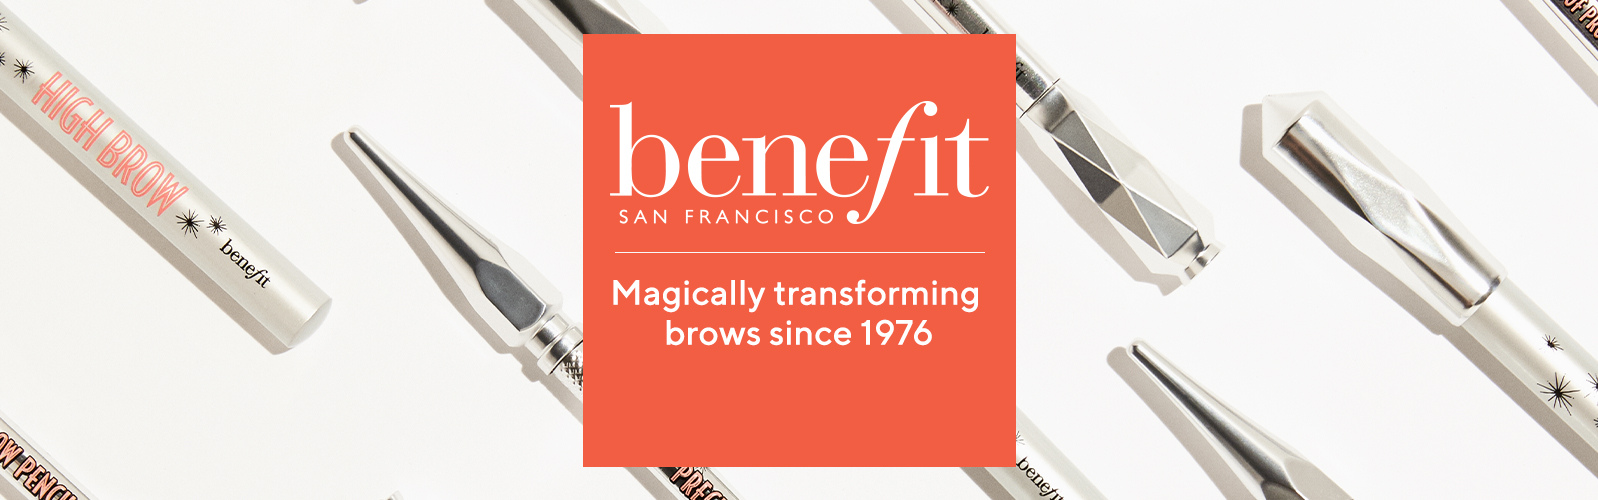 Benefit. Magically transforming brows since 1976